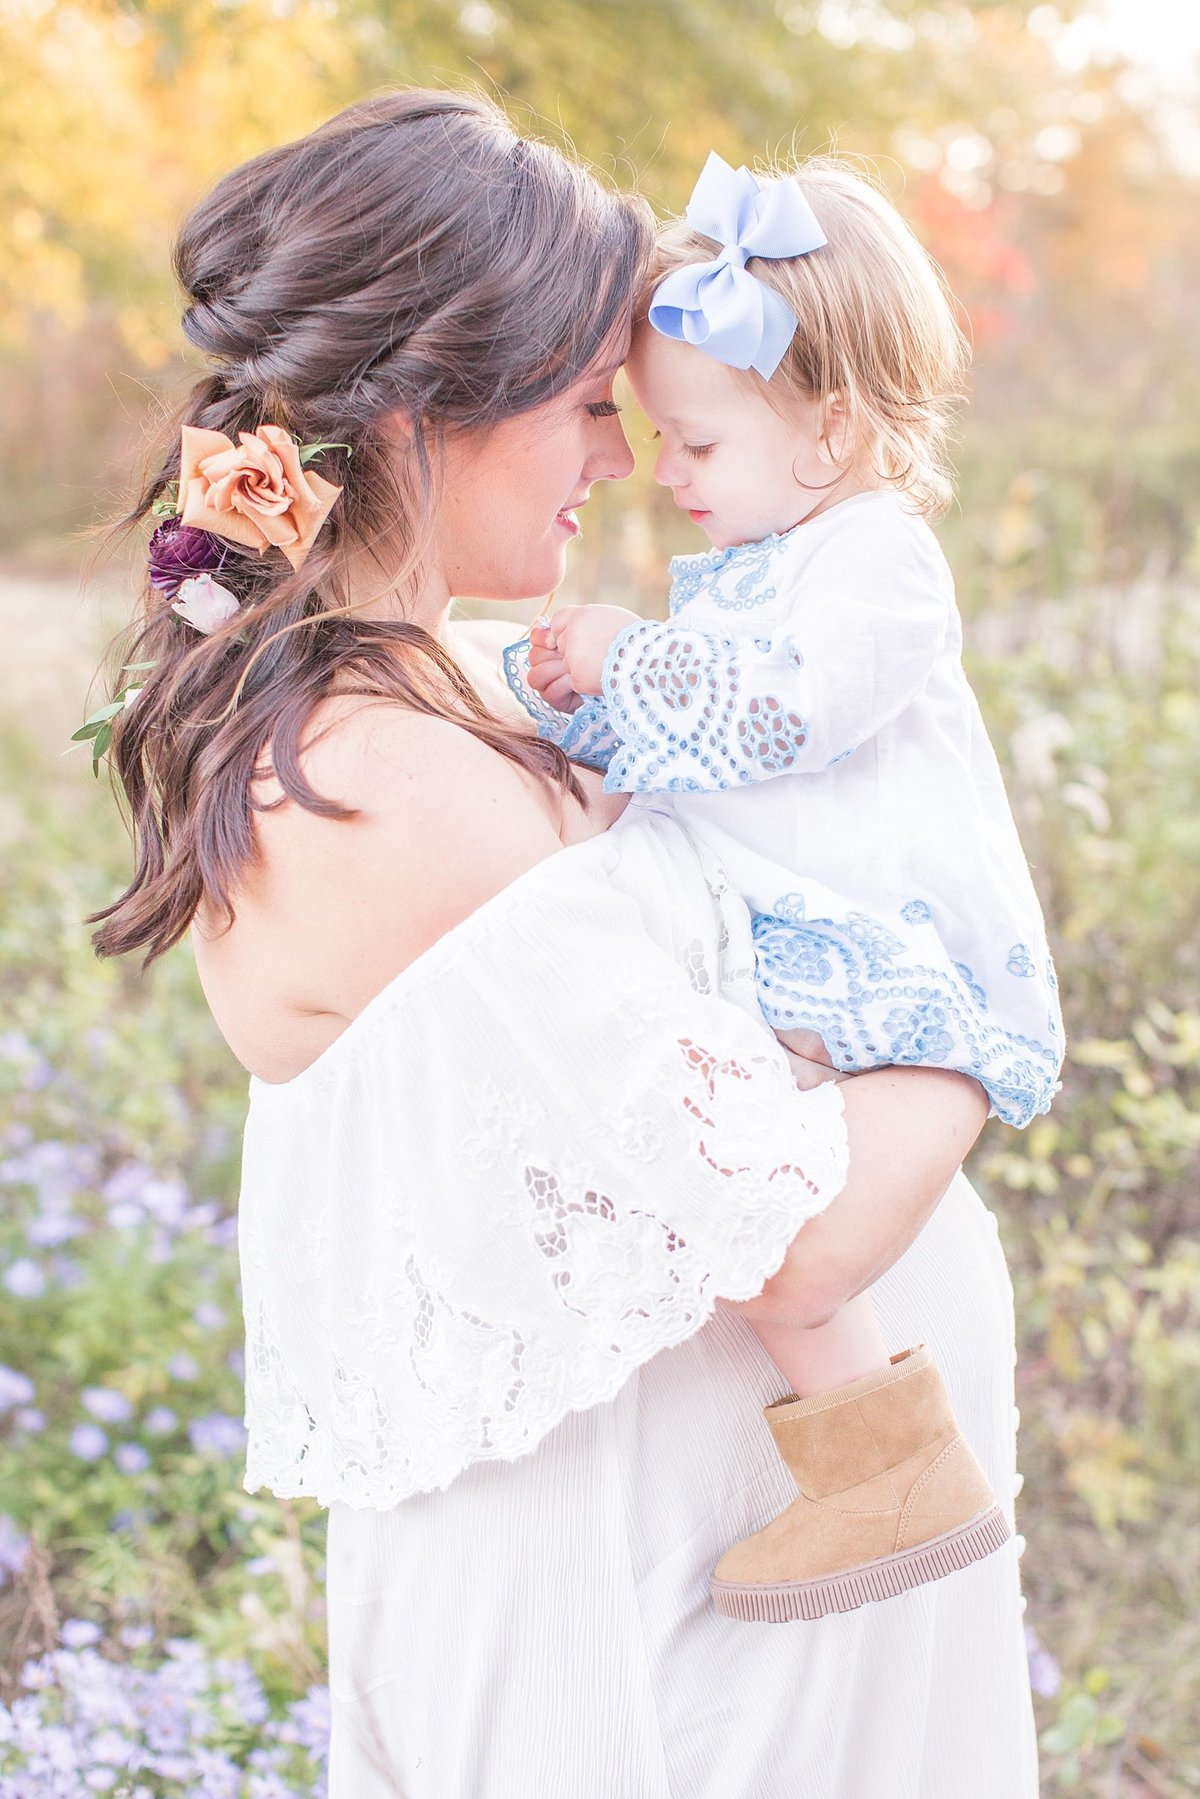 Maryland-maternity-session-jess-becker-photography-11